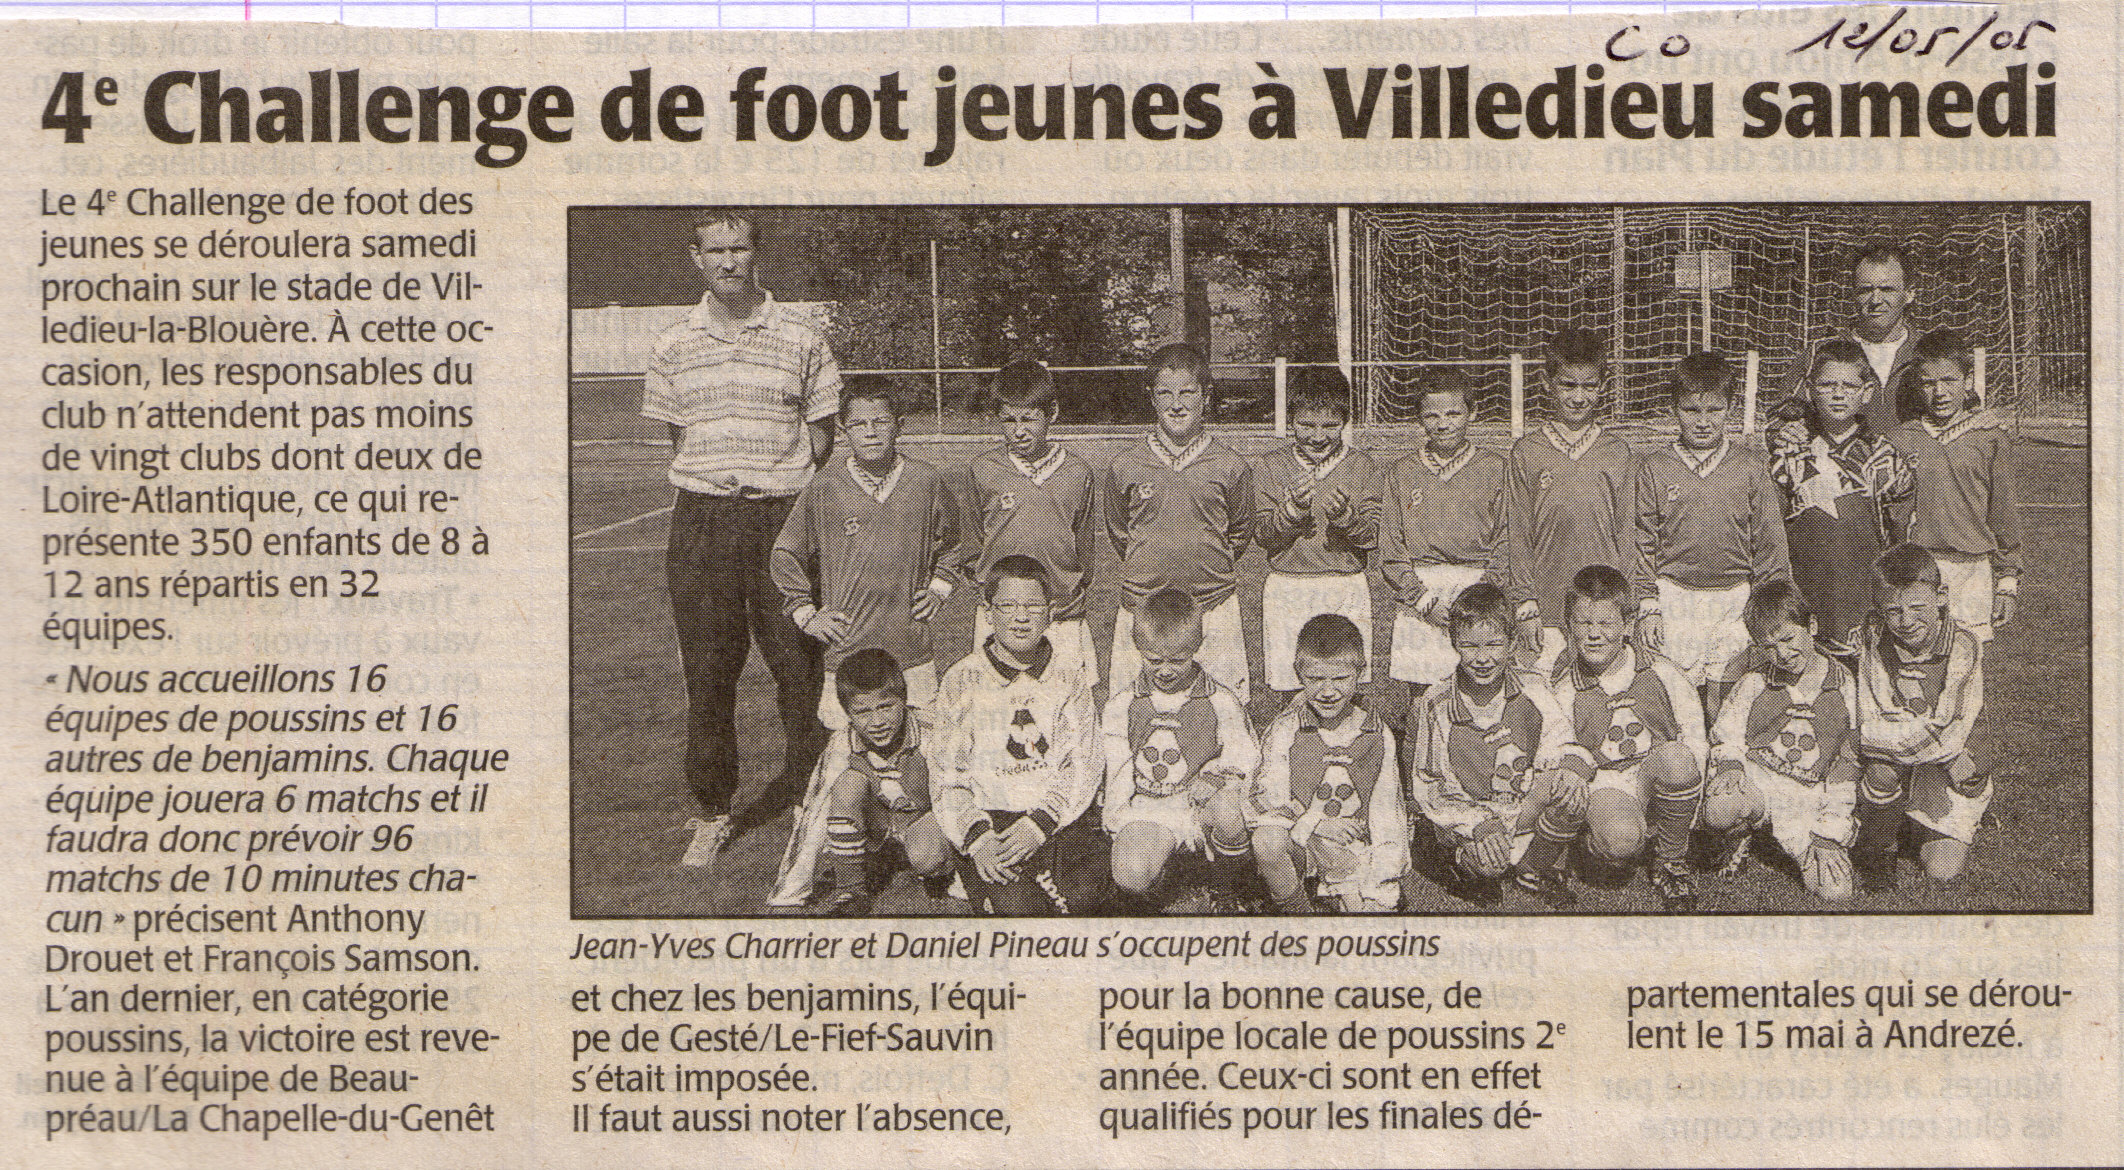 tournoi-pous-benj-2005-co-12-05-05